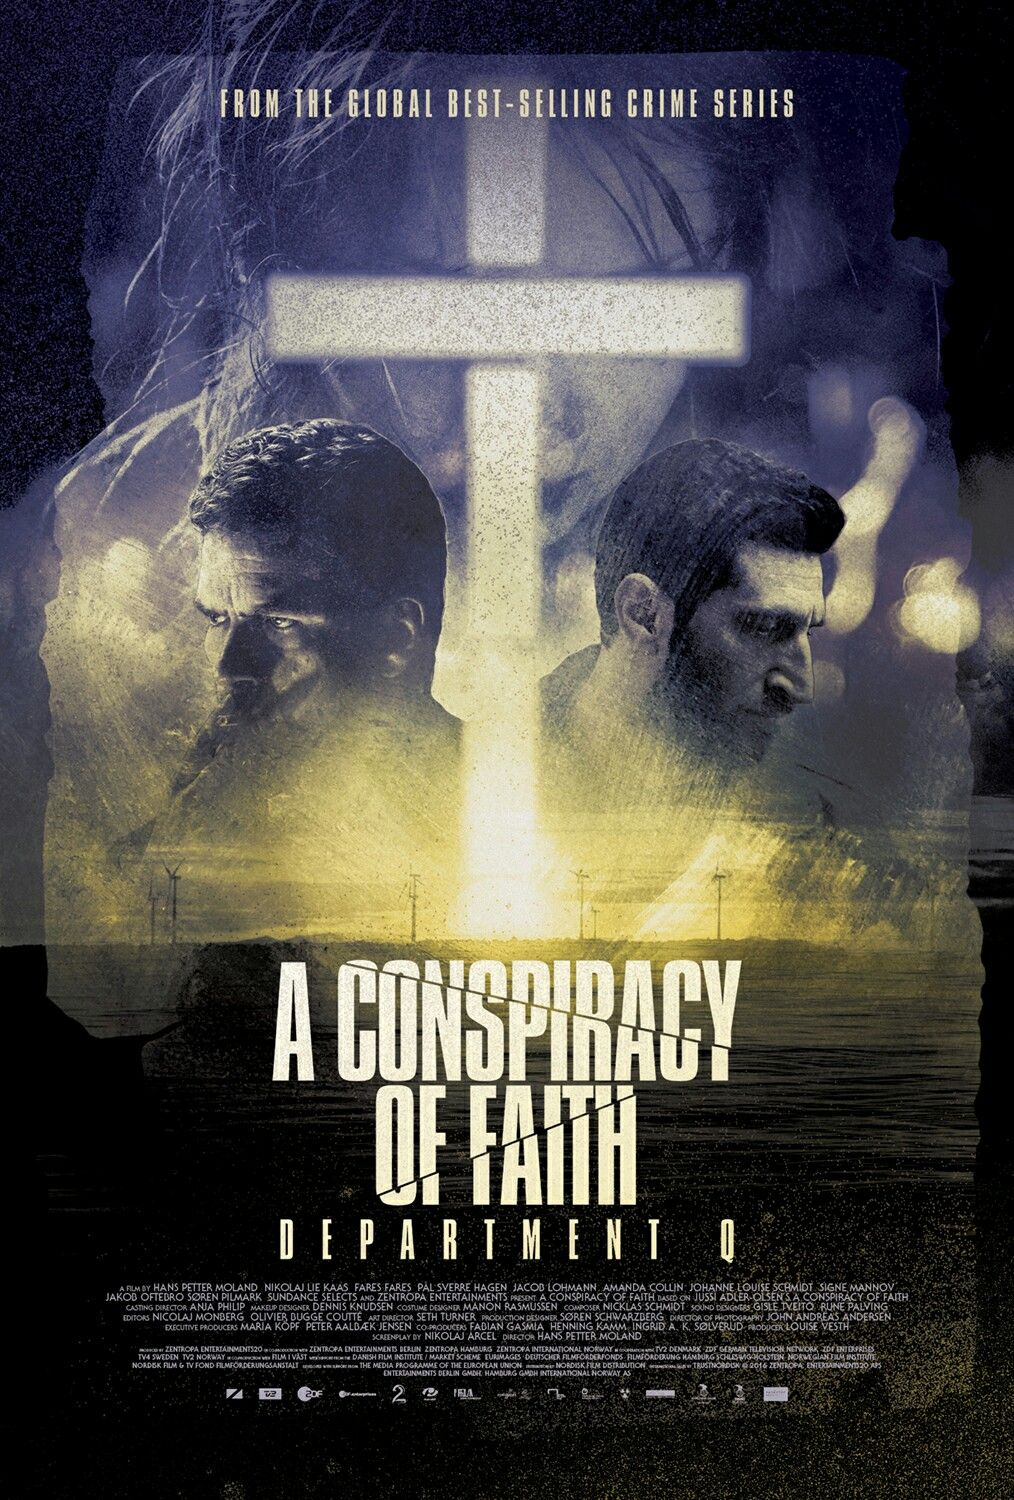 Department Q A Conspiracy Of Faith 2016 Aka Flaskepost Fra P Solid Danish Detective Thriller Trilogy Definitely Impressed With The Leading Character Nikolaz